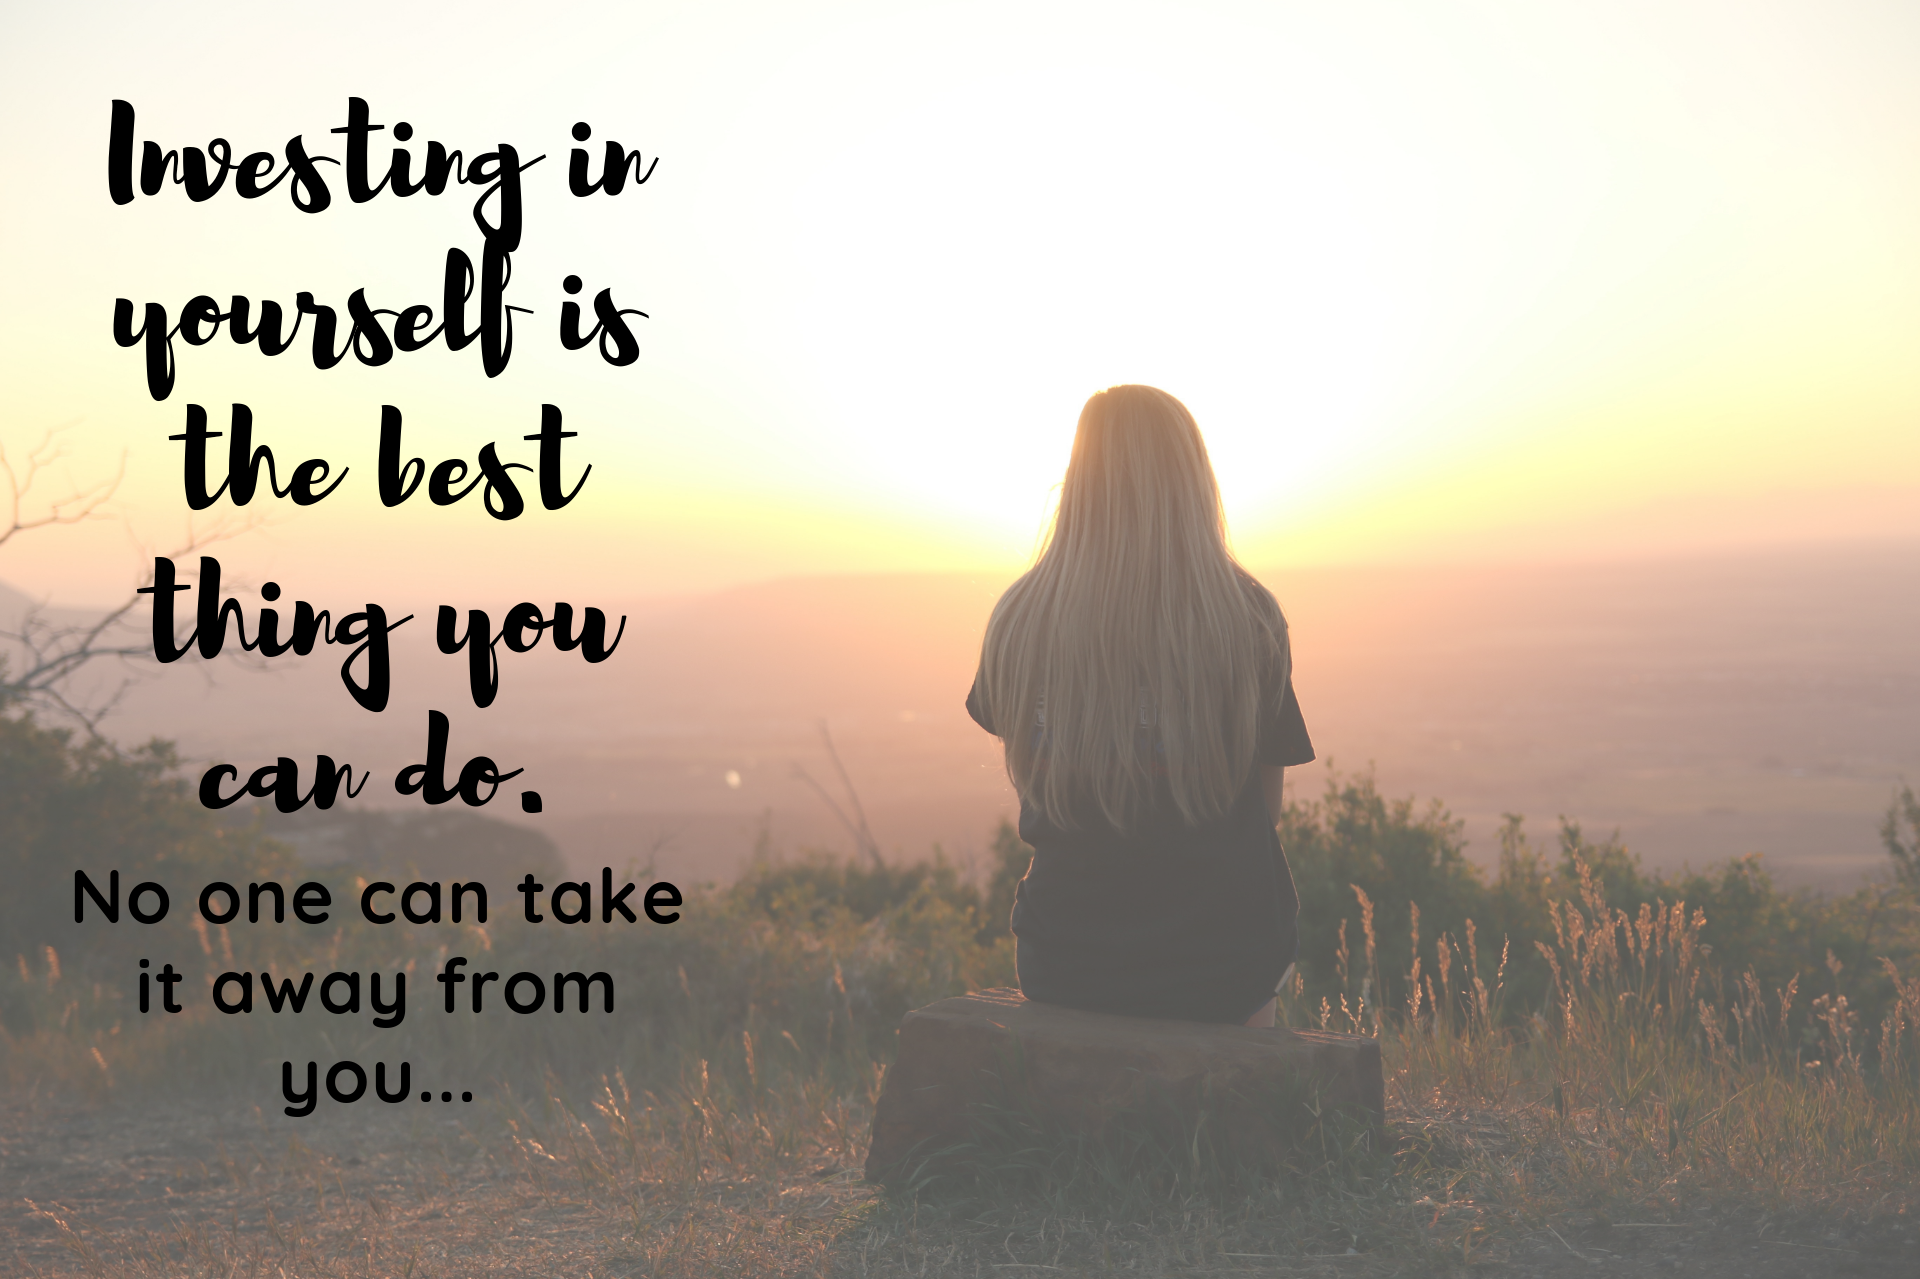 INVESTING IN YOURSELF IS ONE OF THE BEST THINGS YOU CAN DO. NO ONE CAN TAKE IT AWAY FROM YOU.png